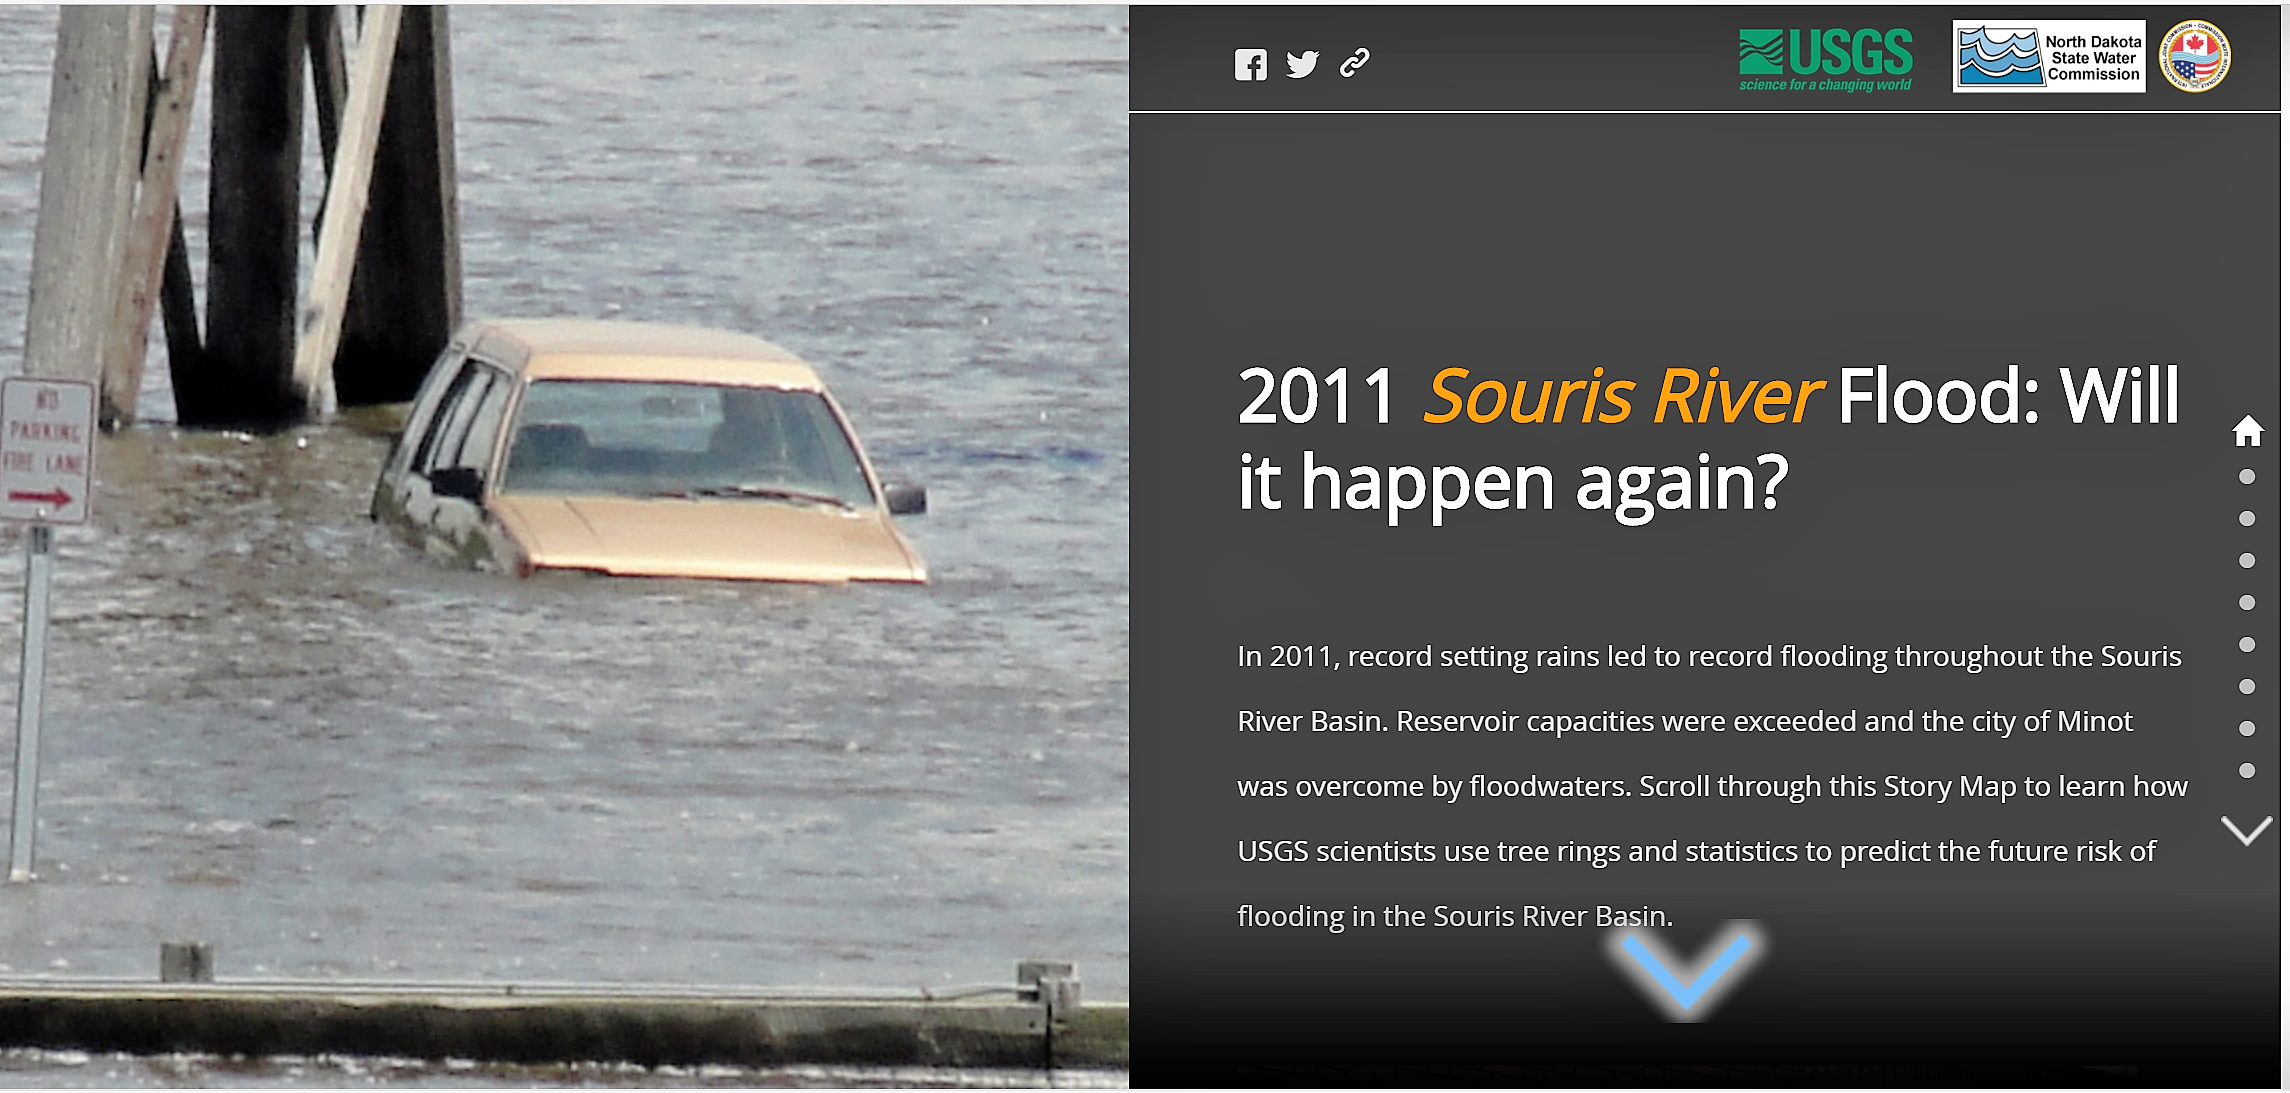 A screenshot of the application created to describe the causes, impacts and potential mitigation solutions of the 2011 Souris River flooding event. Credit: IJC